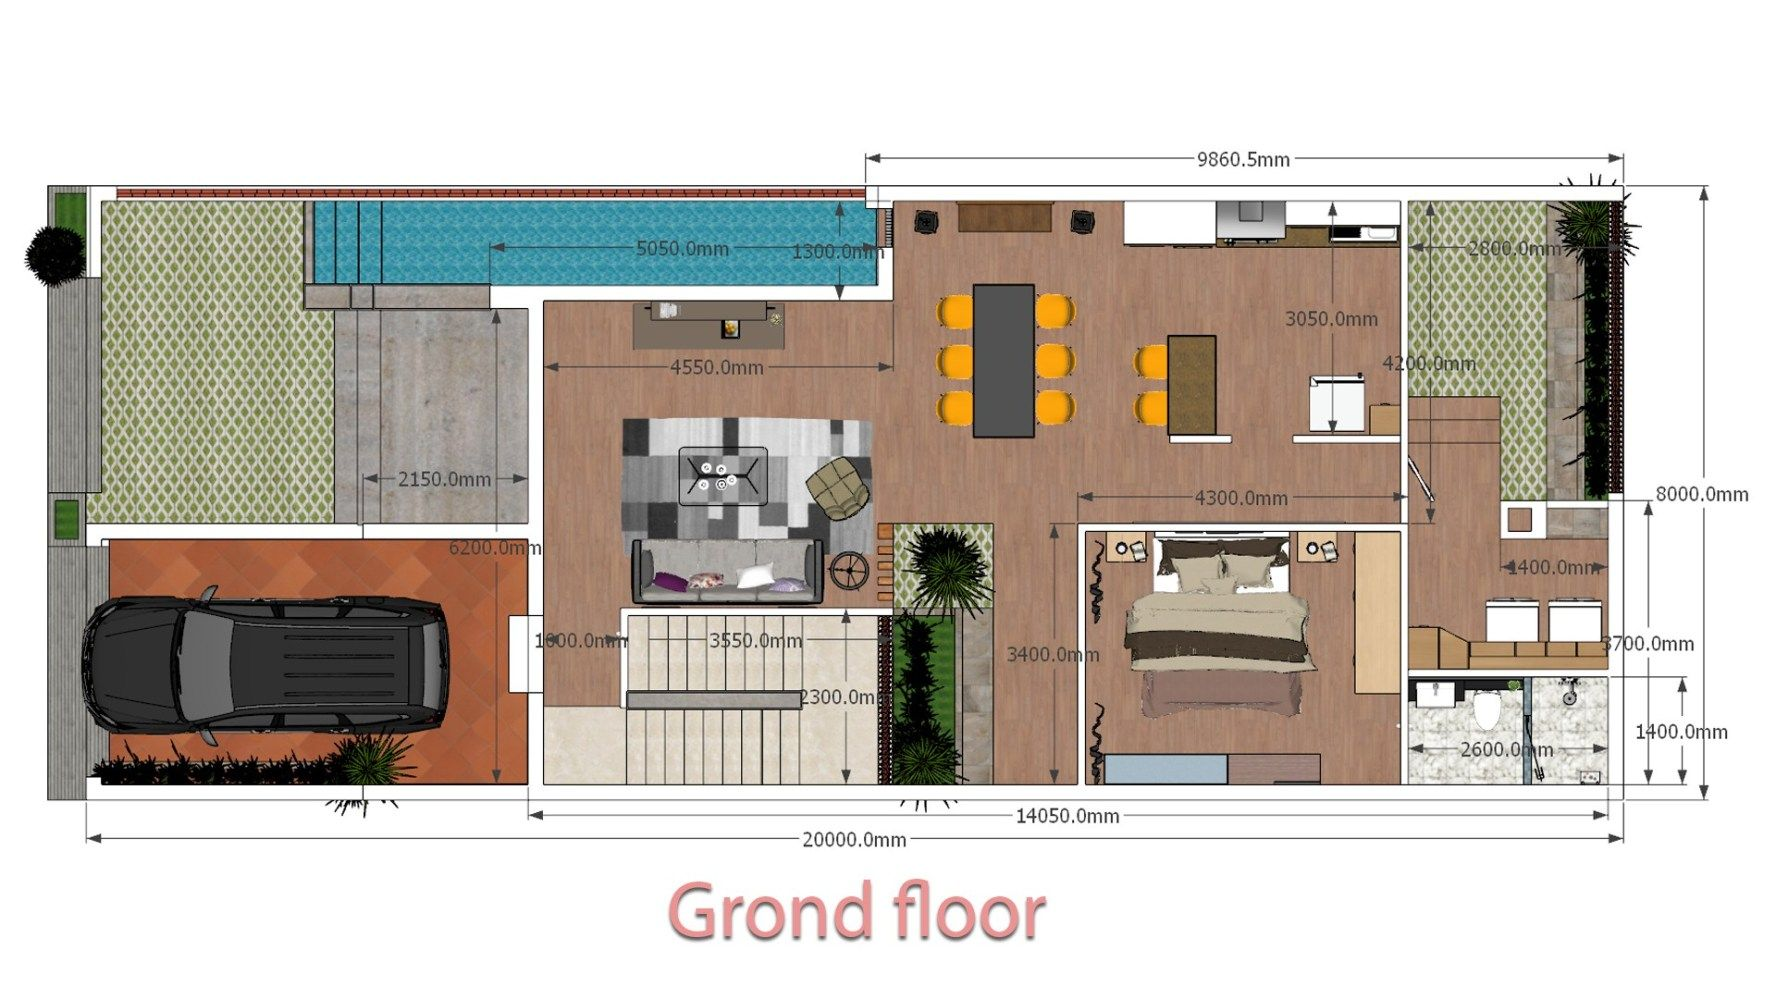 House Plans 8x20m With Full Plan 4beds Sam House Plans House Plans House Design Modern Small House Design